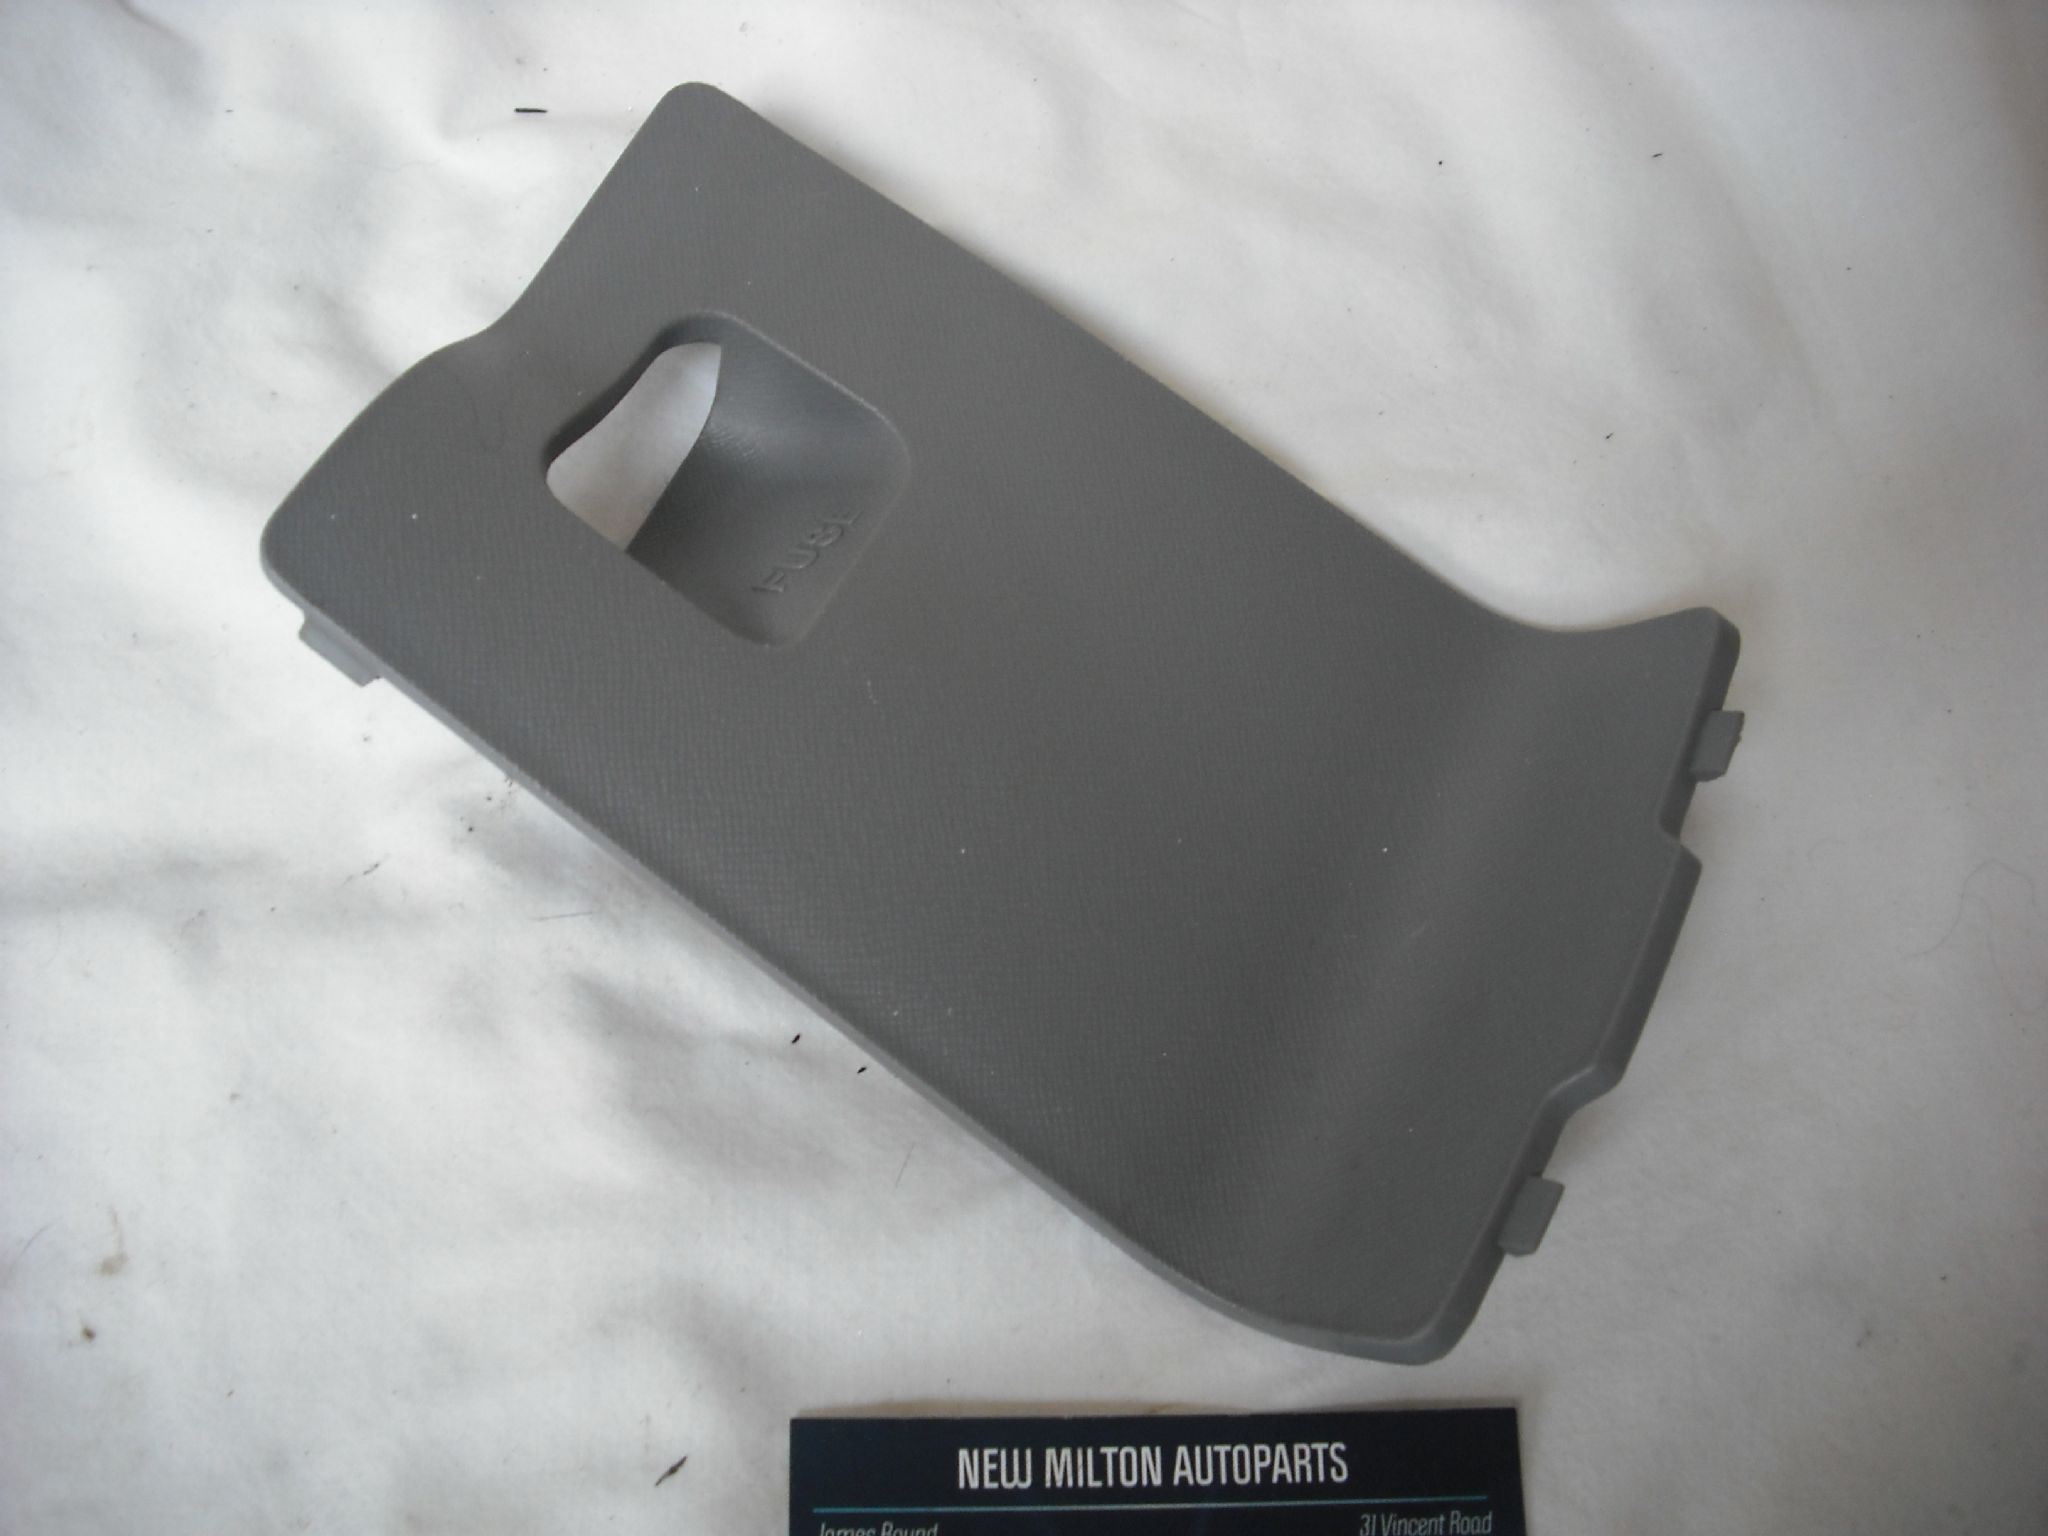 2004 2007 A Genuine Kia Picanto Dash Mounted Fuse Box Tray Saab Inspection Cover Grey 84755 07900